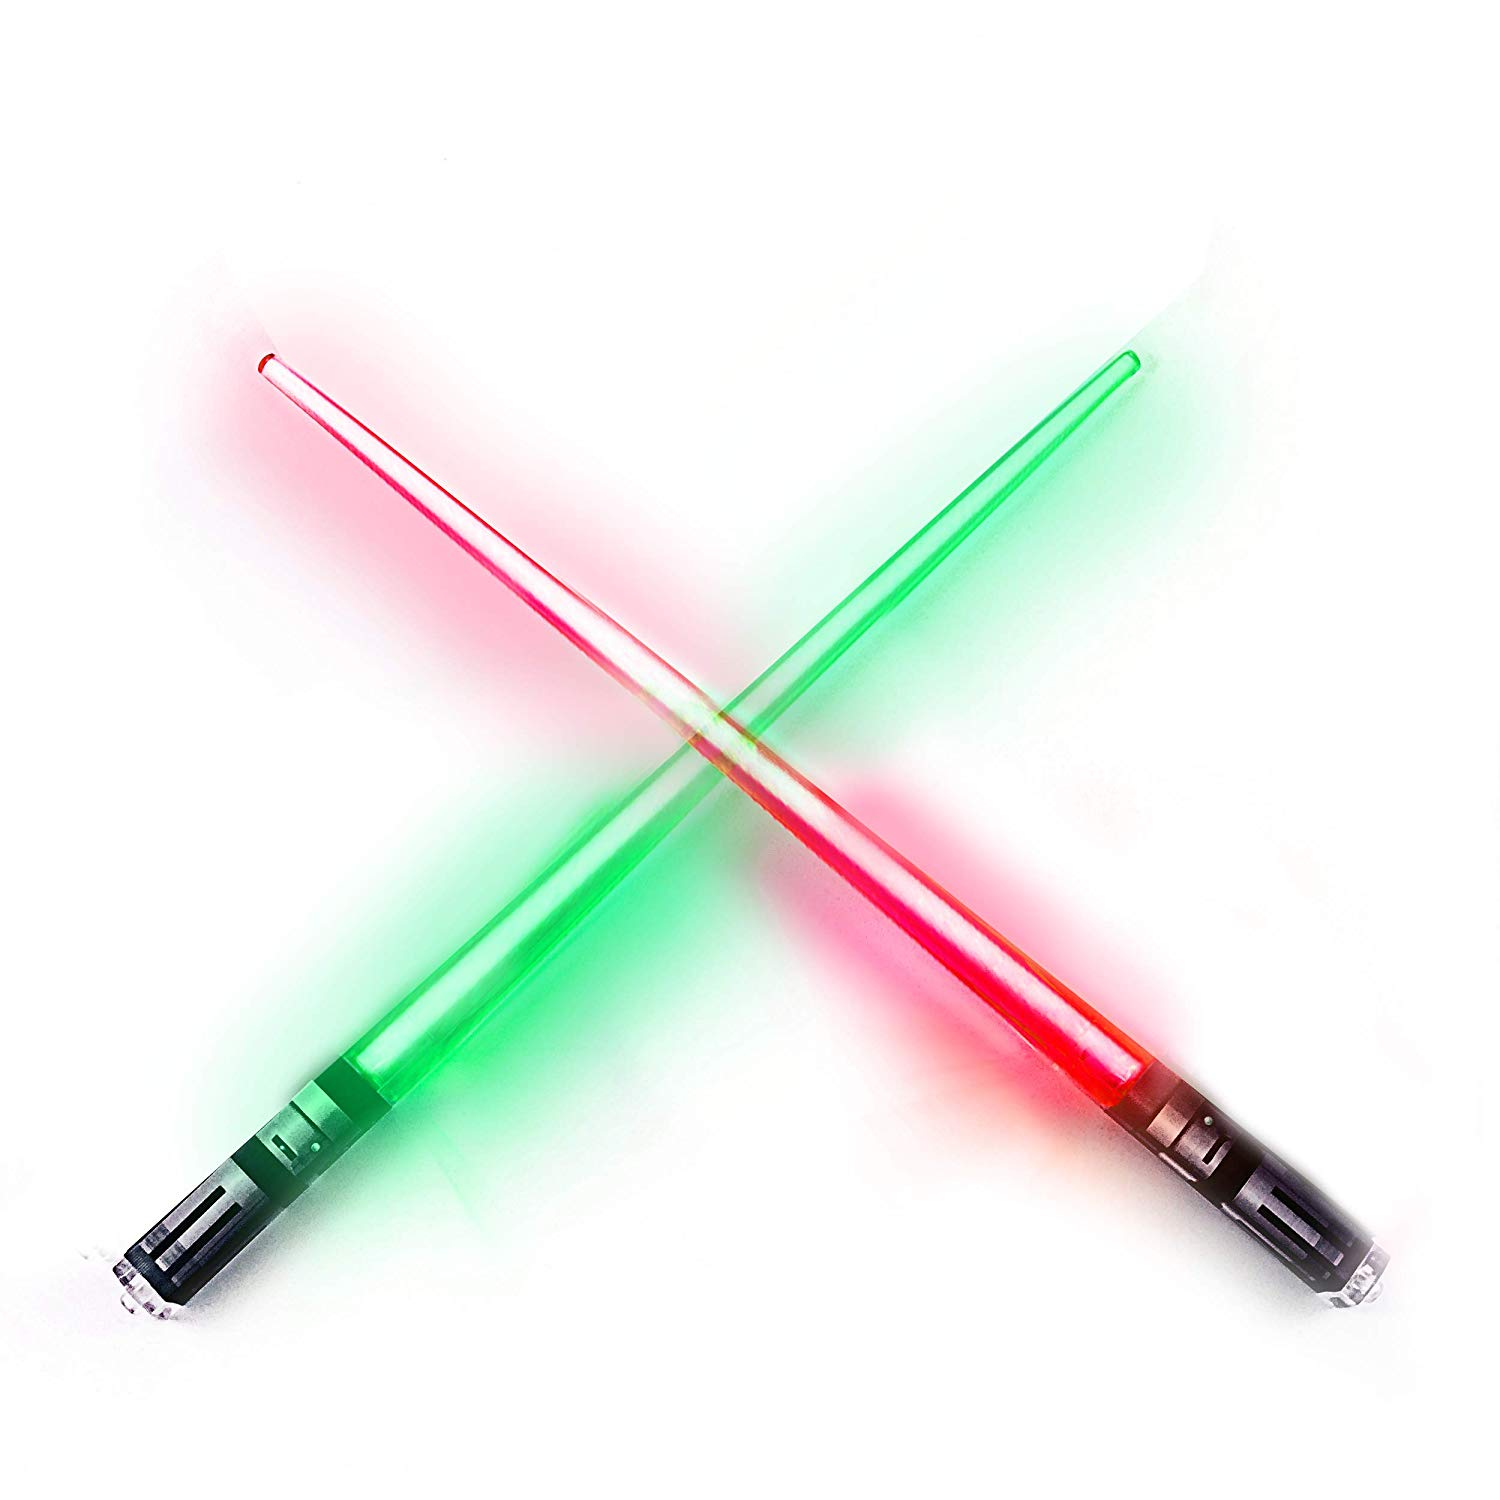 star wars lightsaber chop sticks